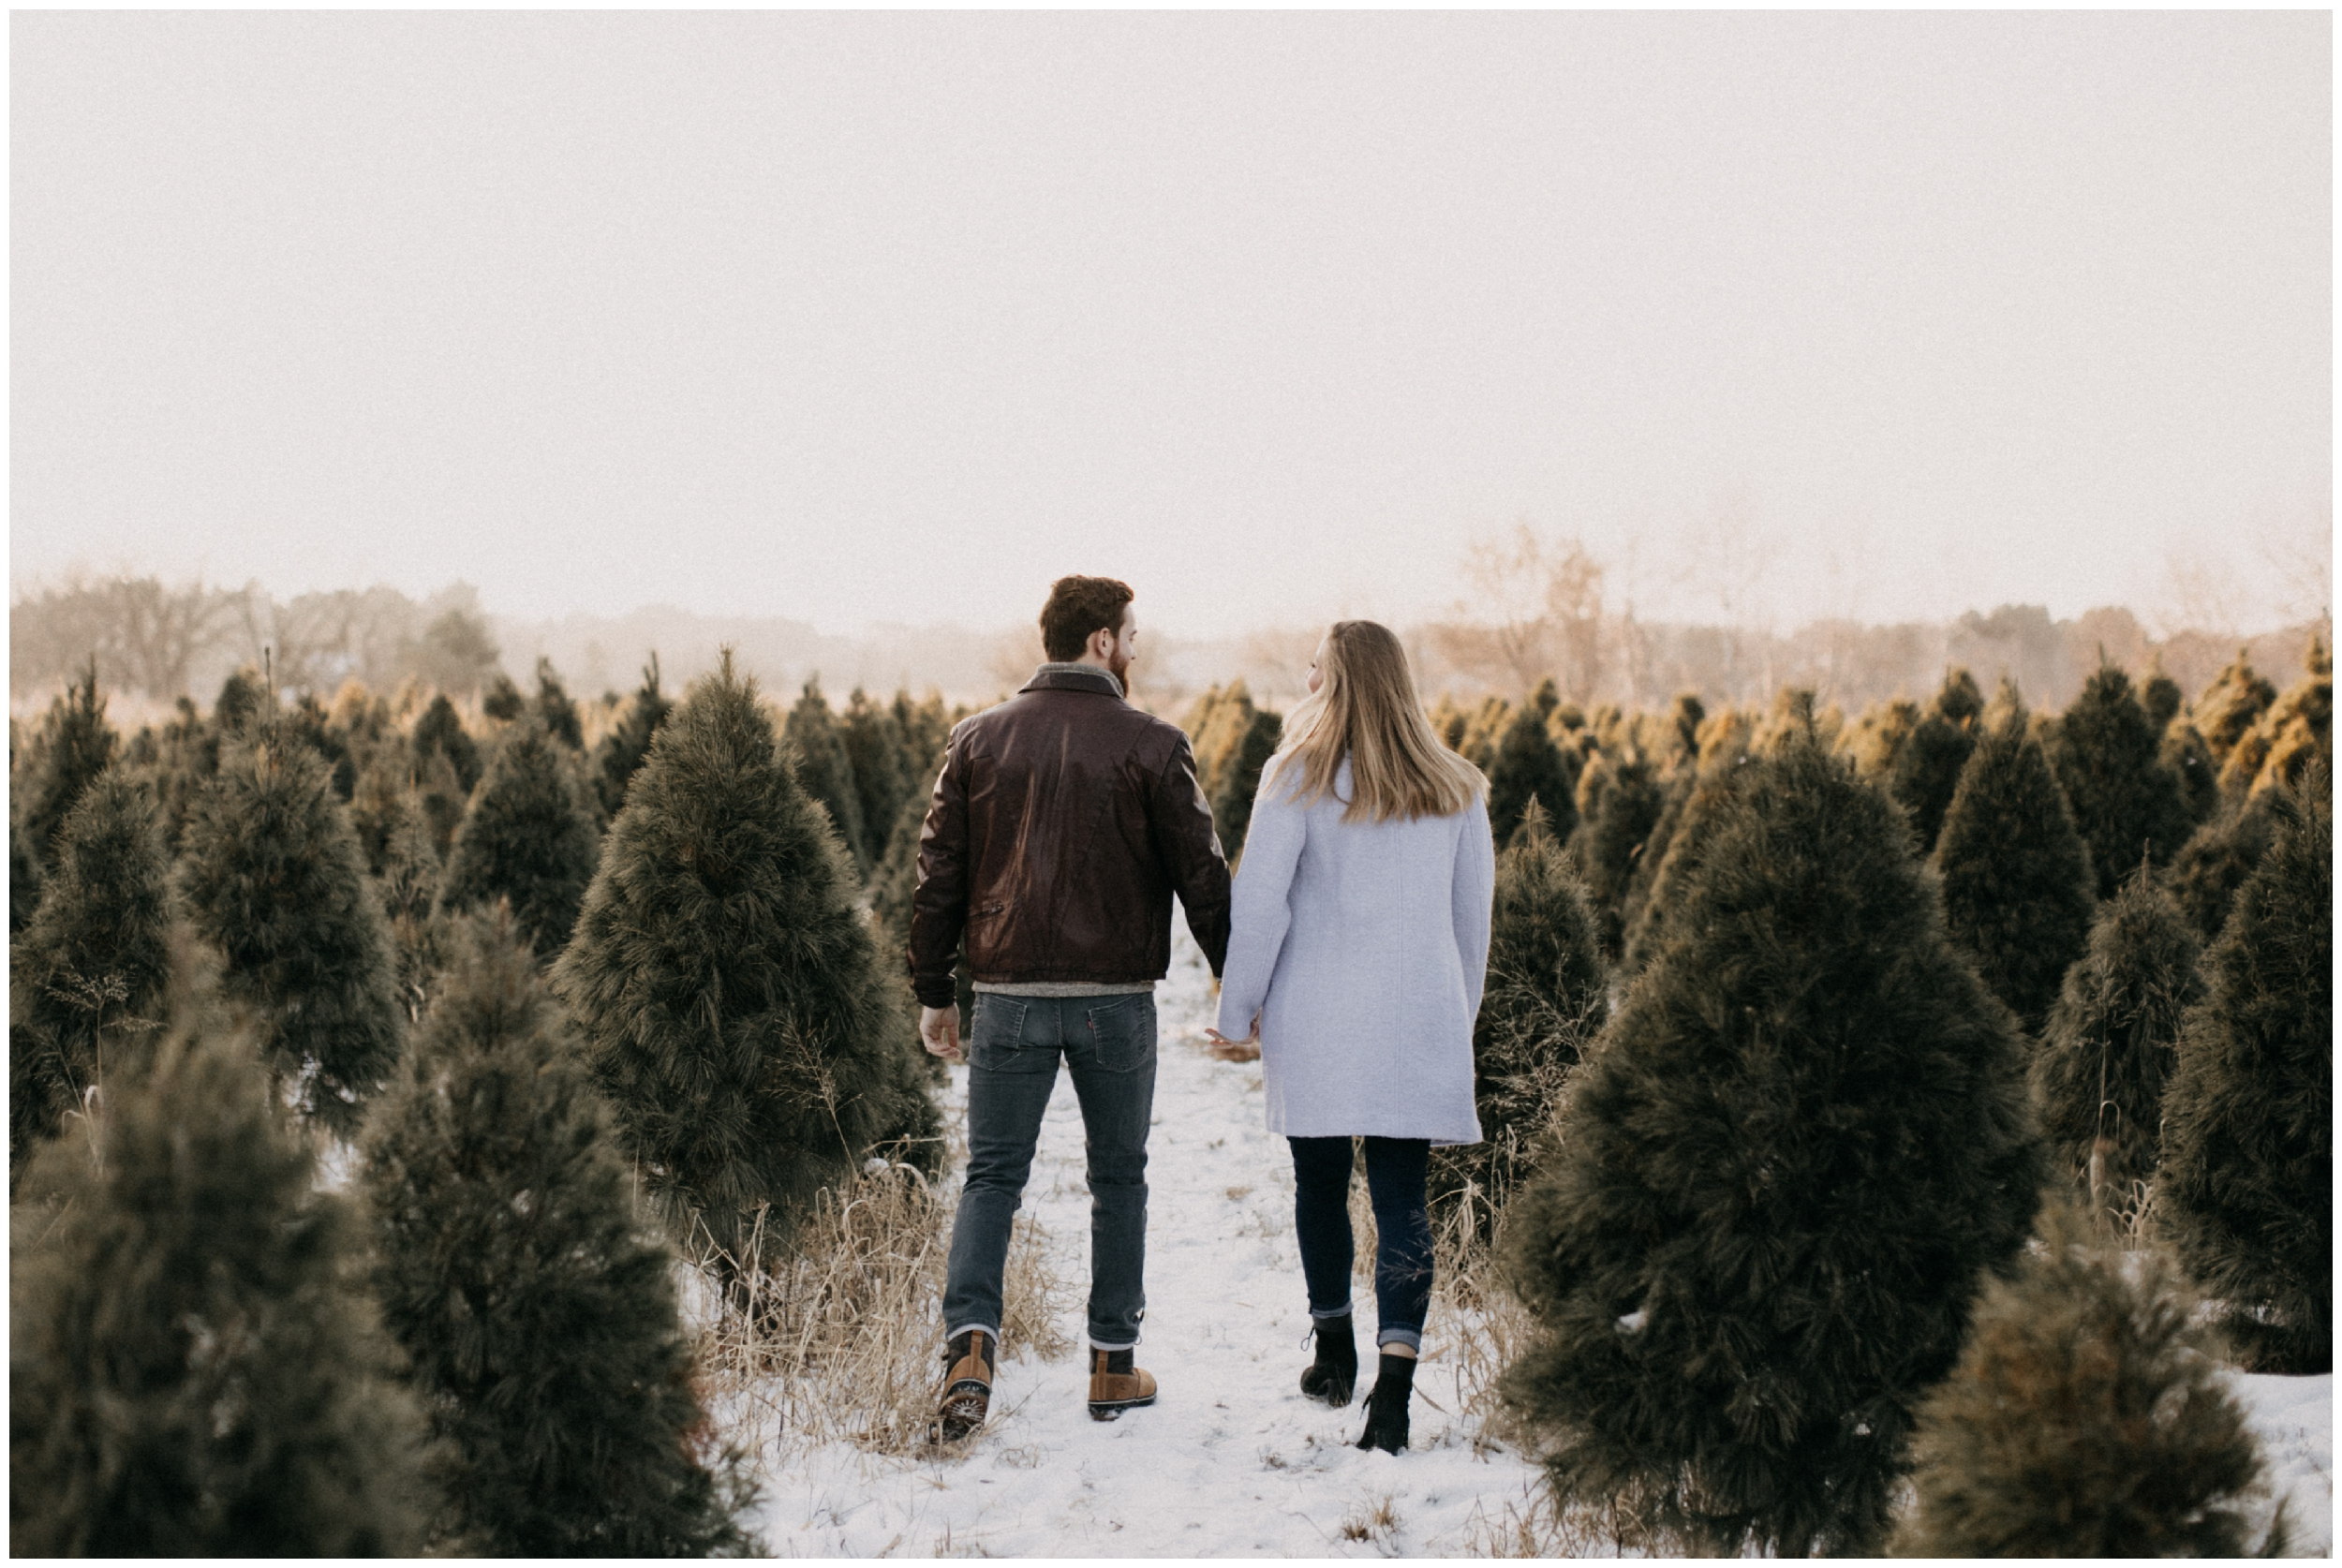 Pine tree forest winter engagement session in Minnesota